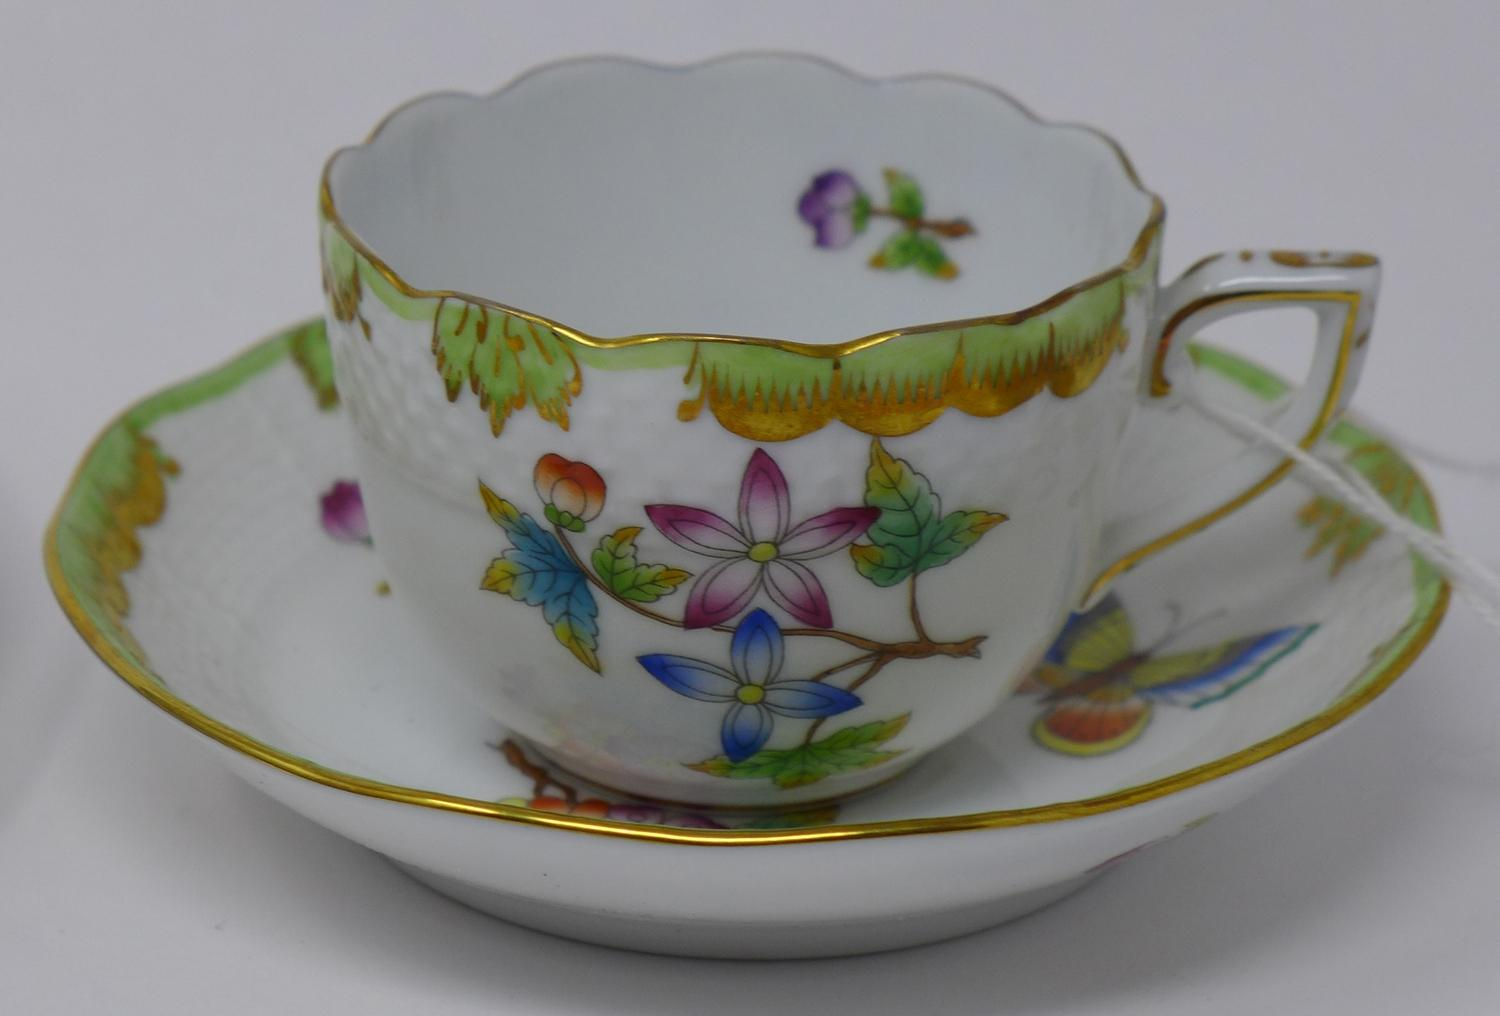 Lot 44 - A Herend porcelain trio, cup, saucer and plate